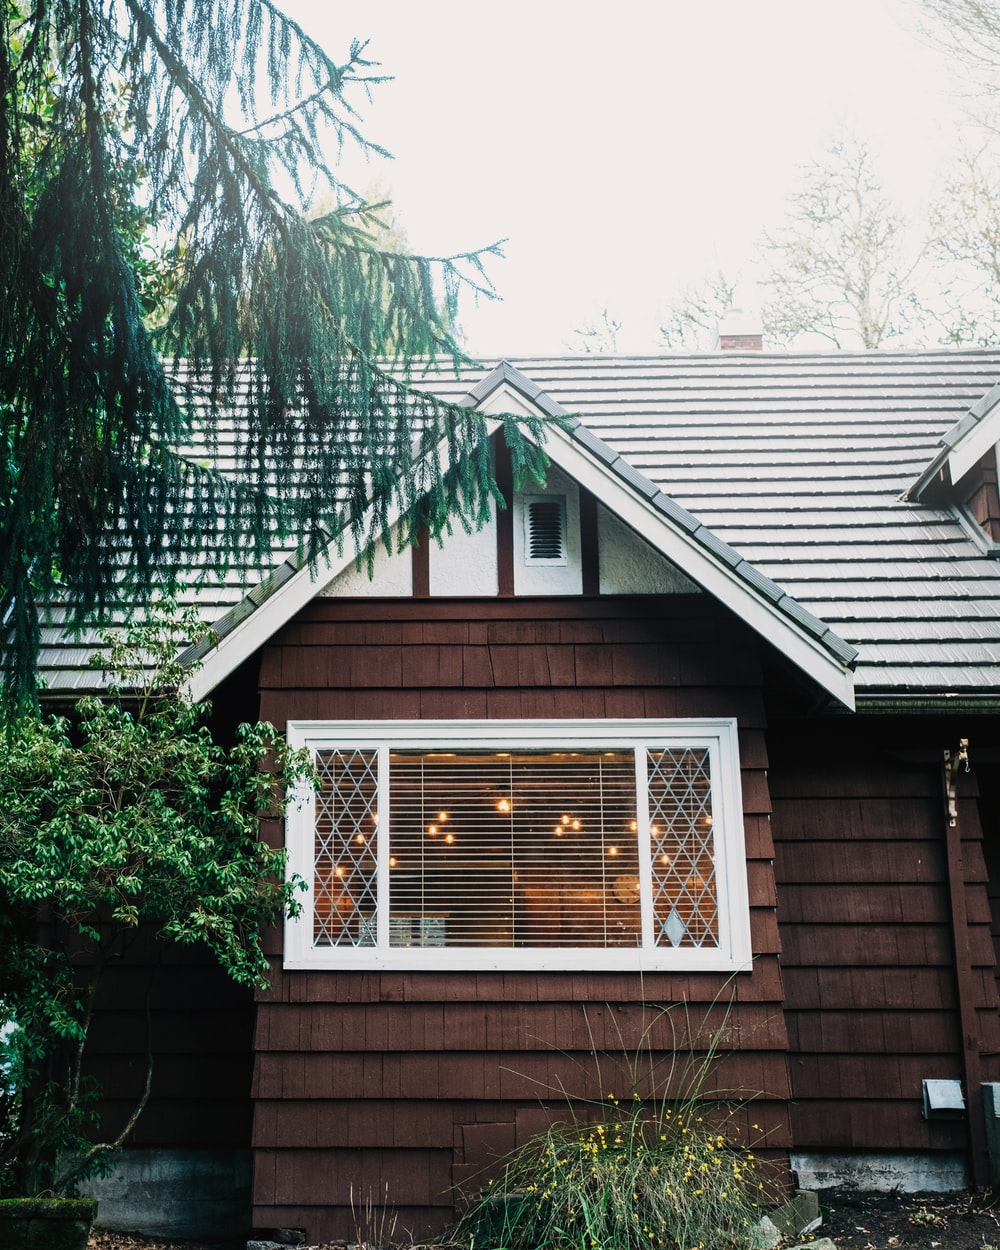 brown wooden house with green plants